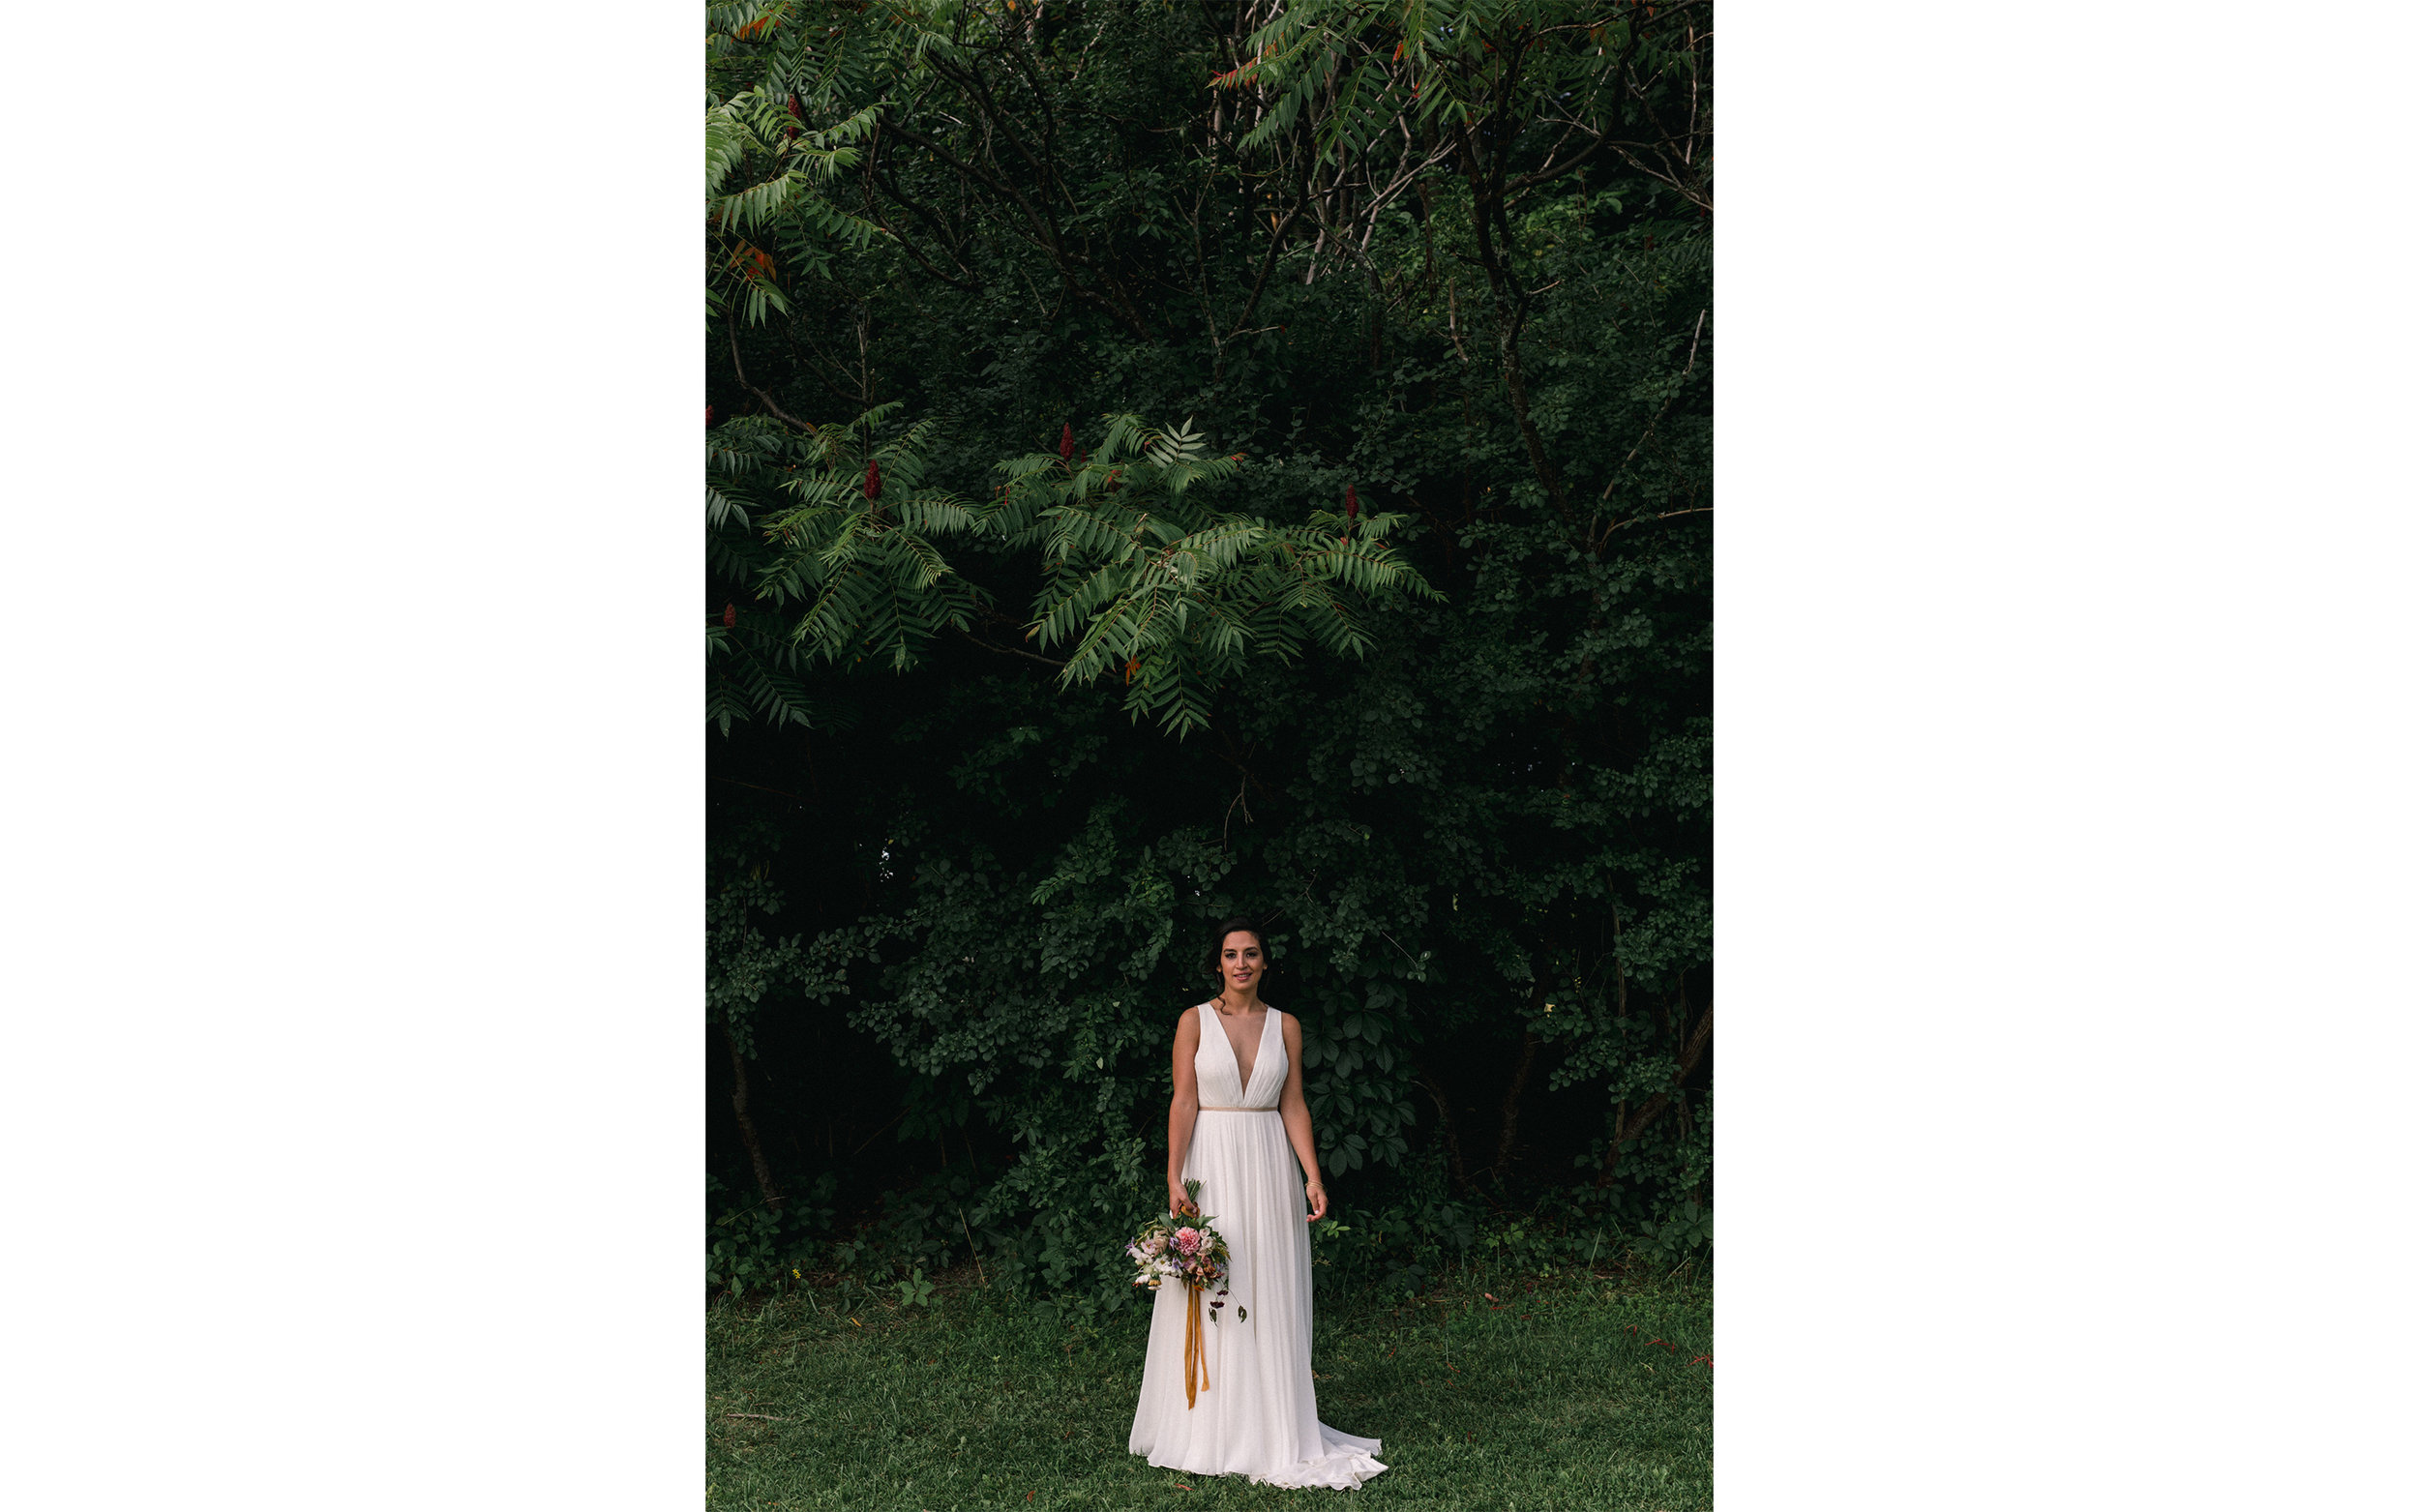 Berkshires Wedding Fine Art Wedding Photographer_Meg Haley Photographs_036.jpg